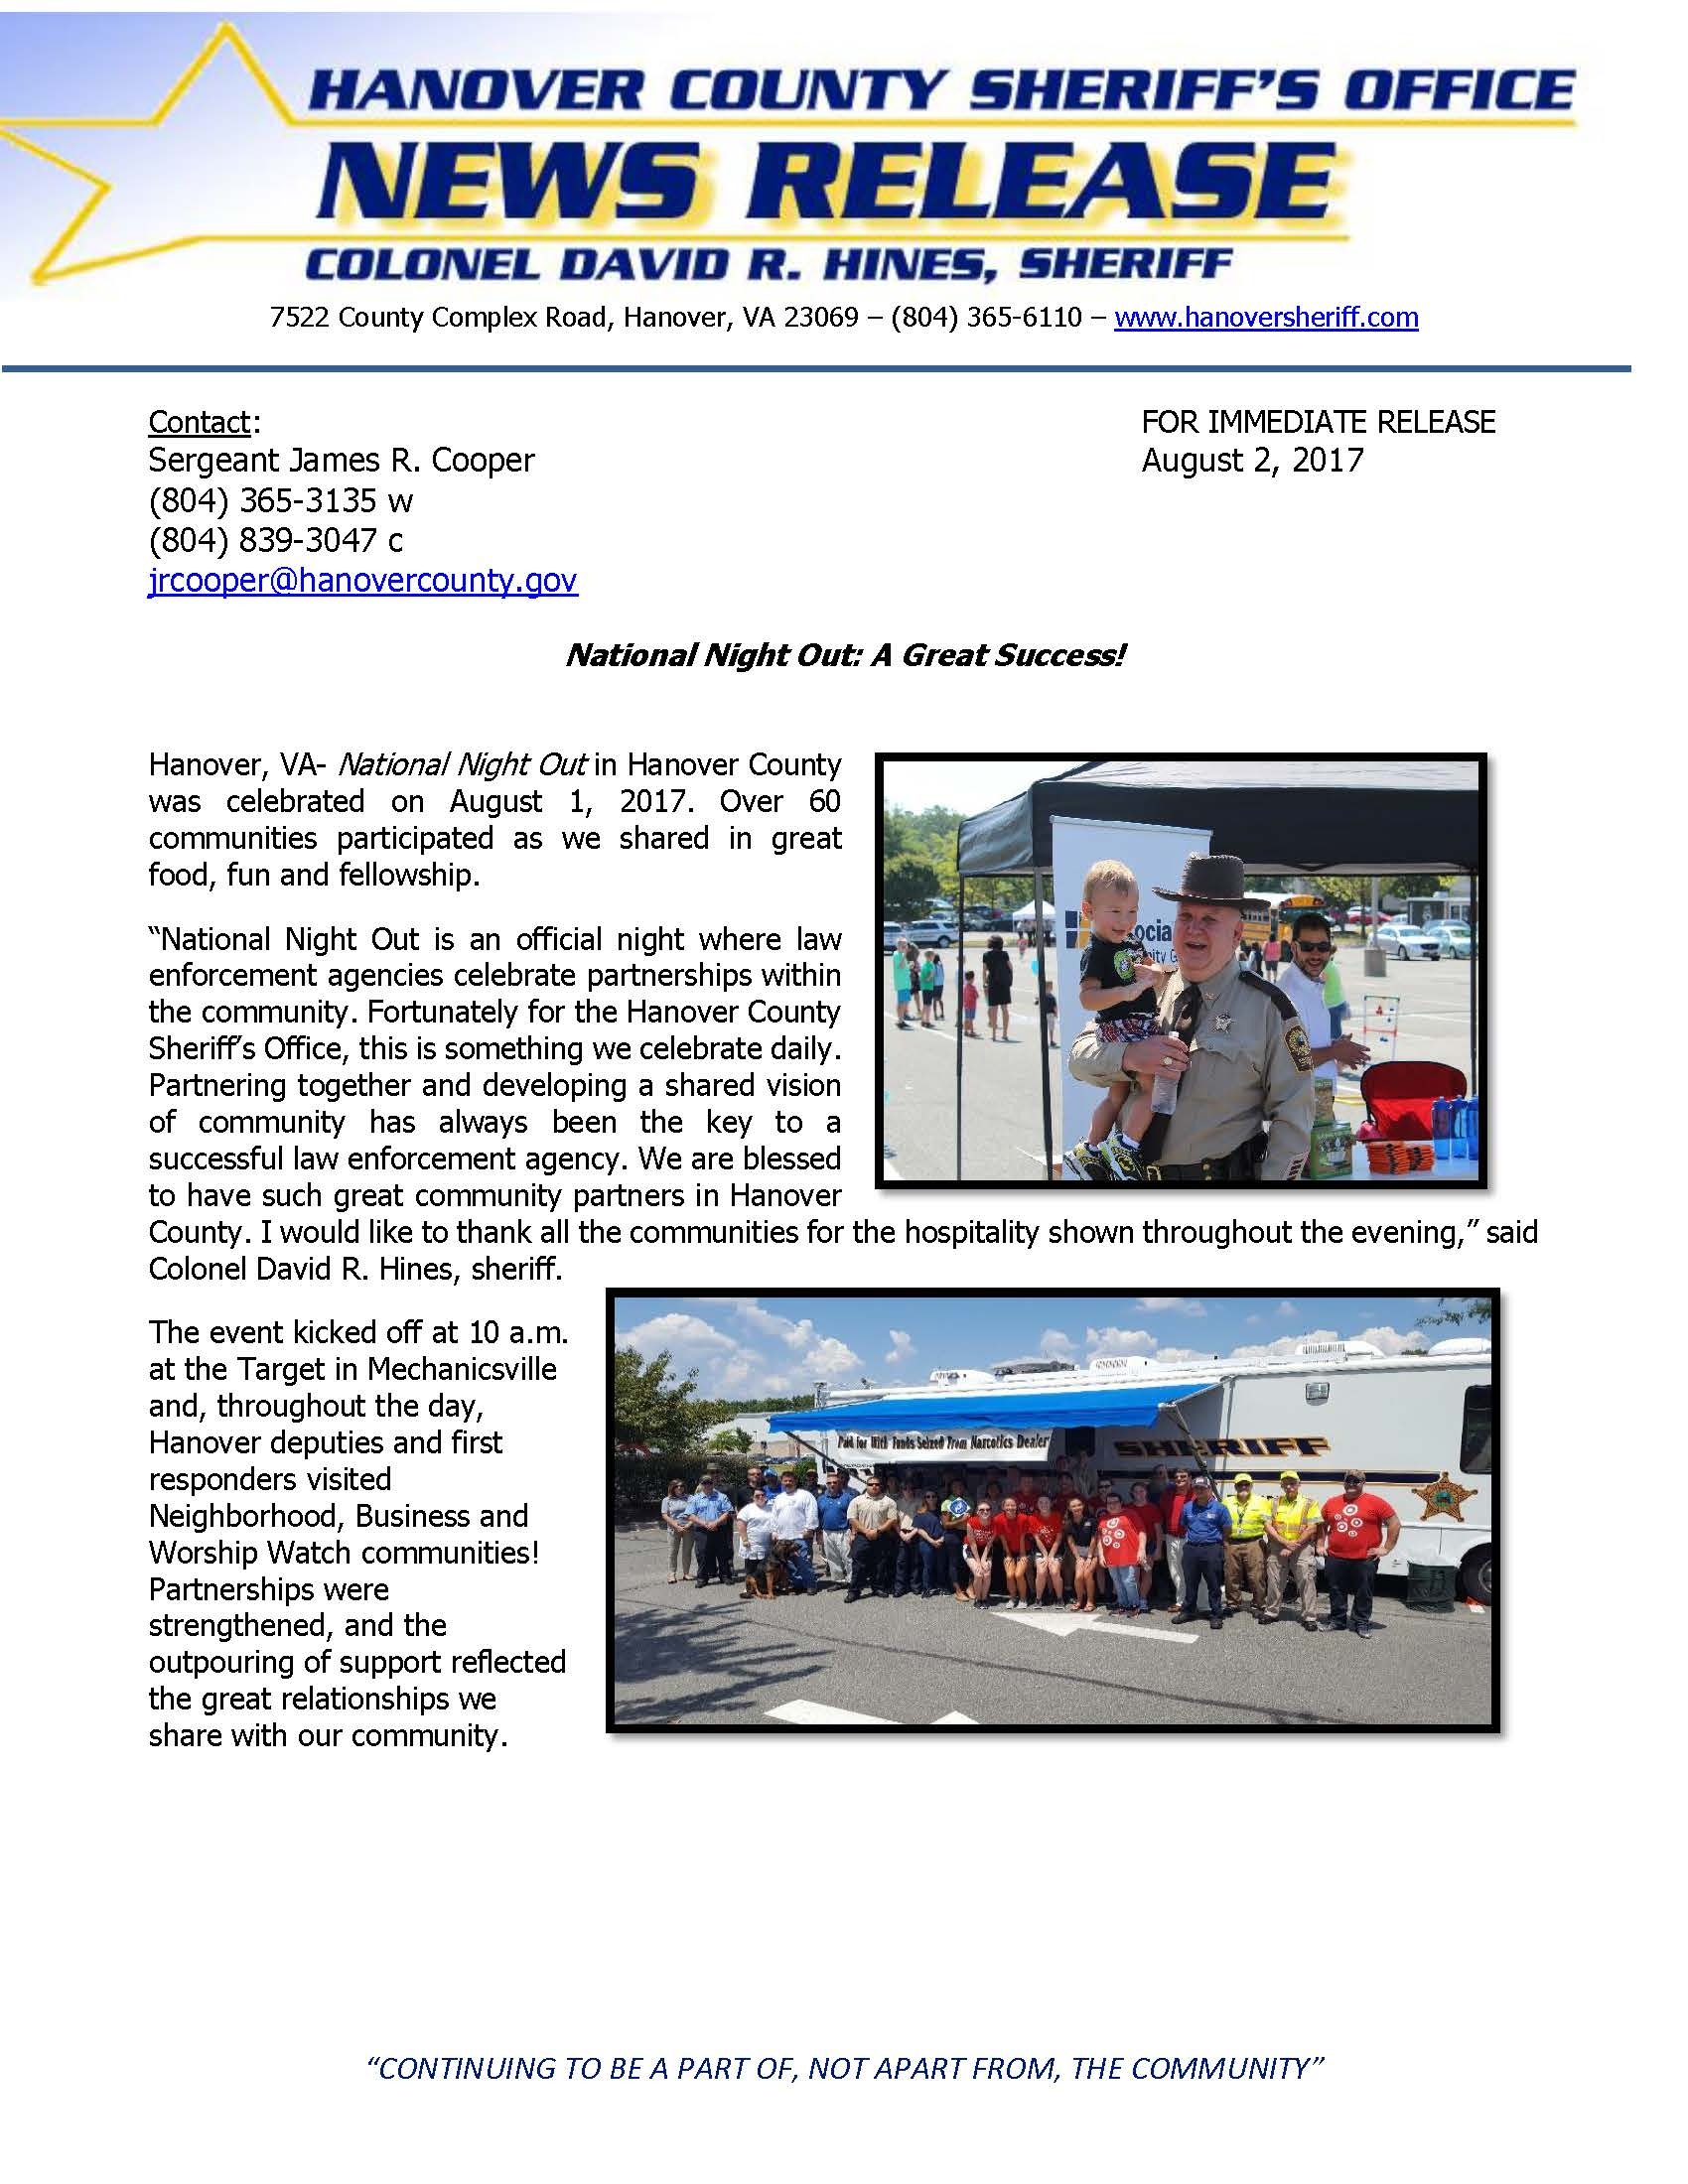 NNO 2017- Great Success_Page_1